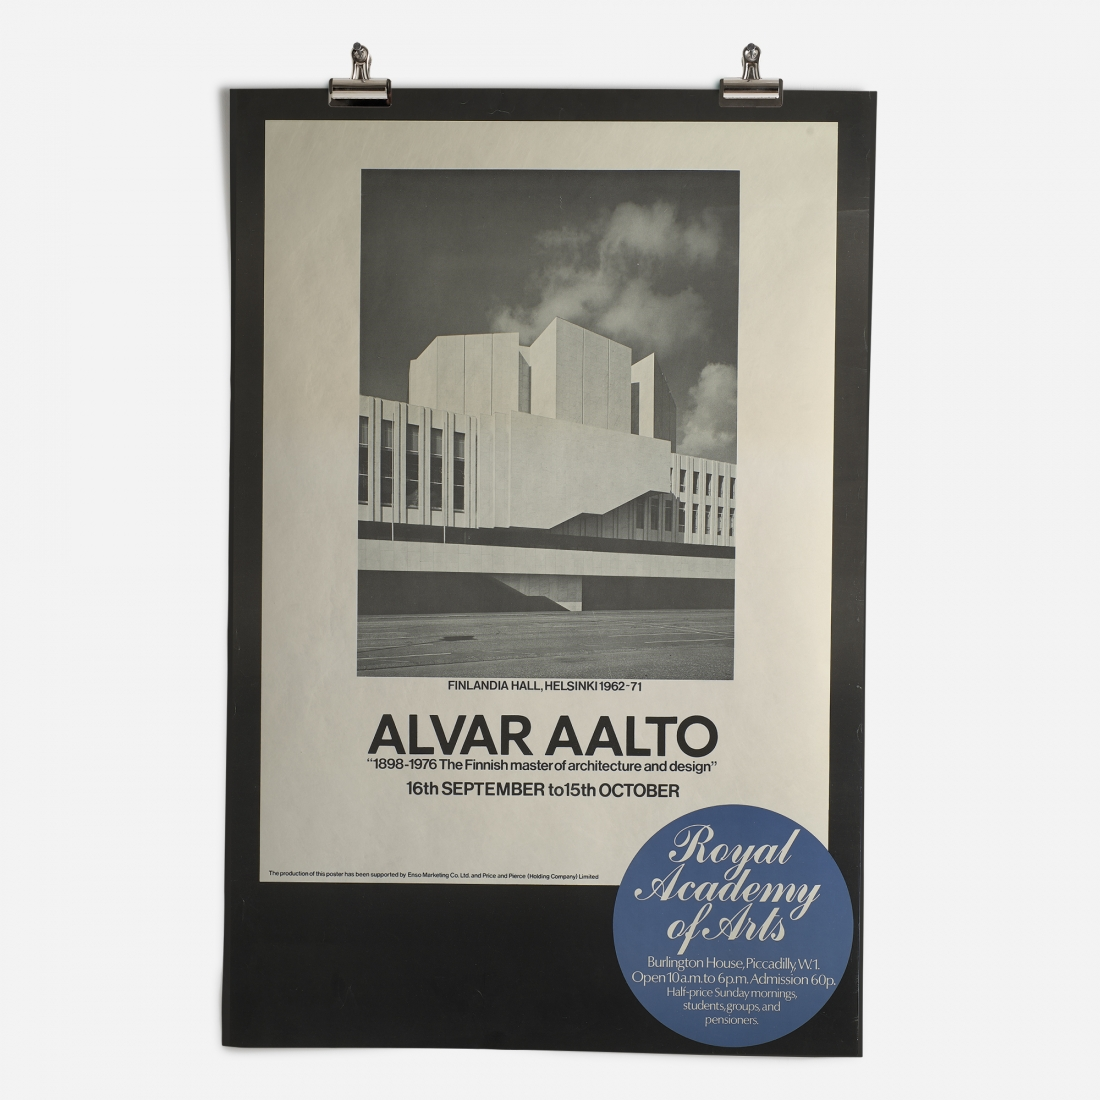 RA Alvar Aalto Exhibition 1978 Epic Poster ​from the Royal Academy of Arts Collection